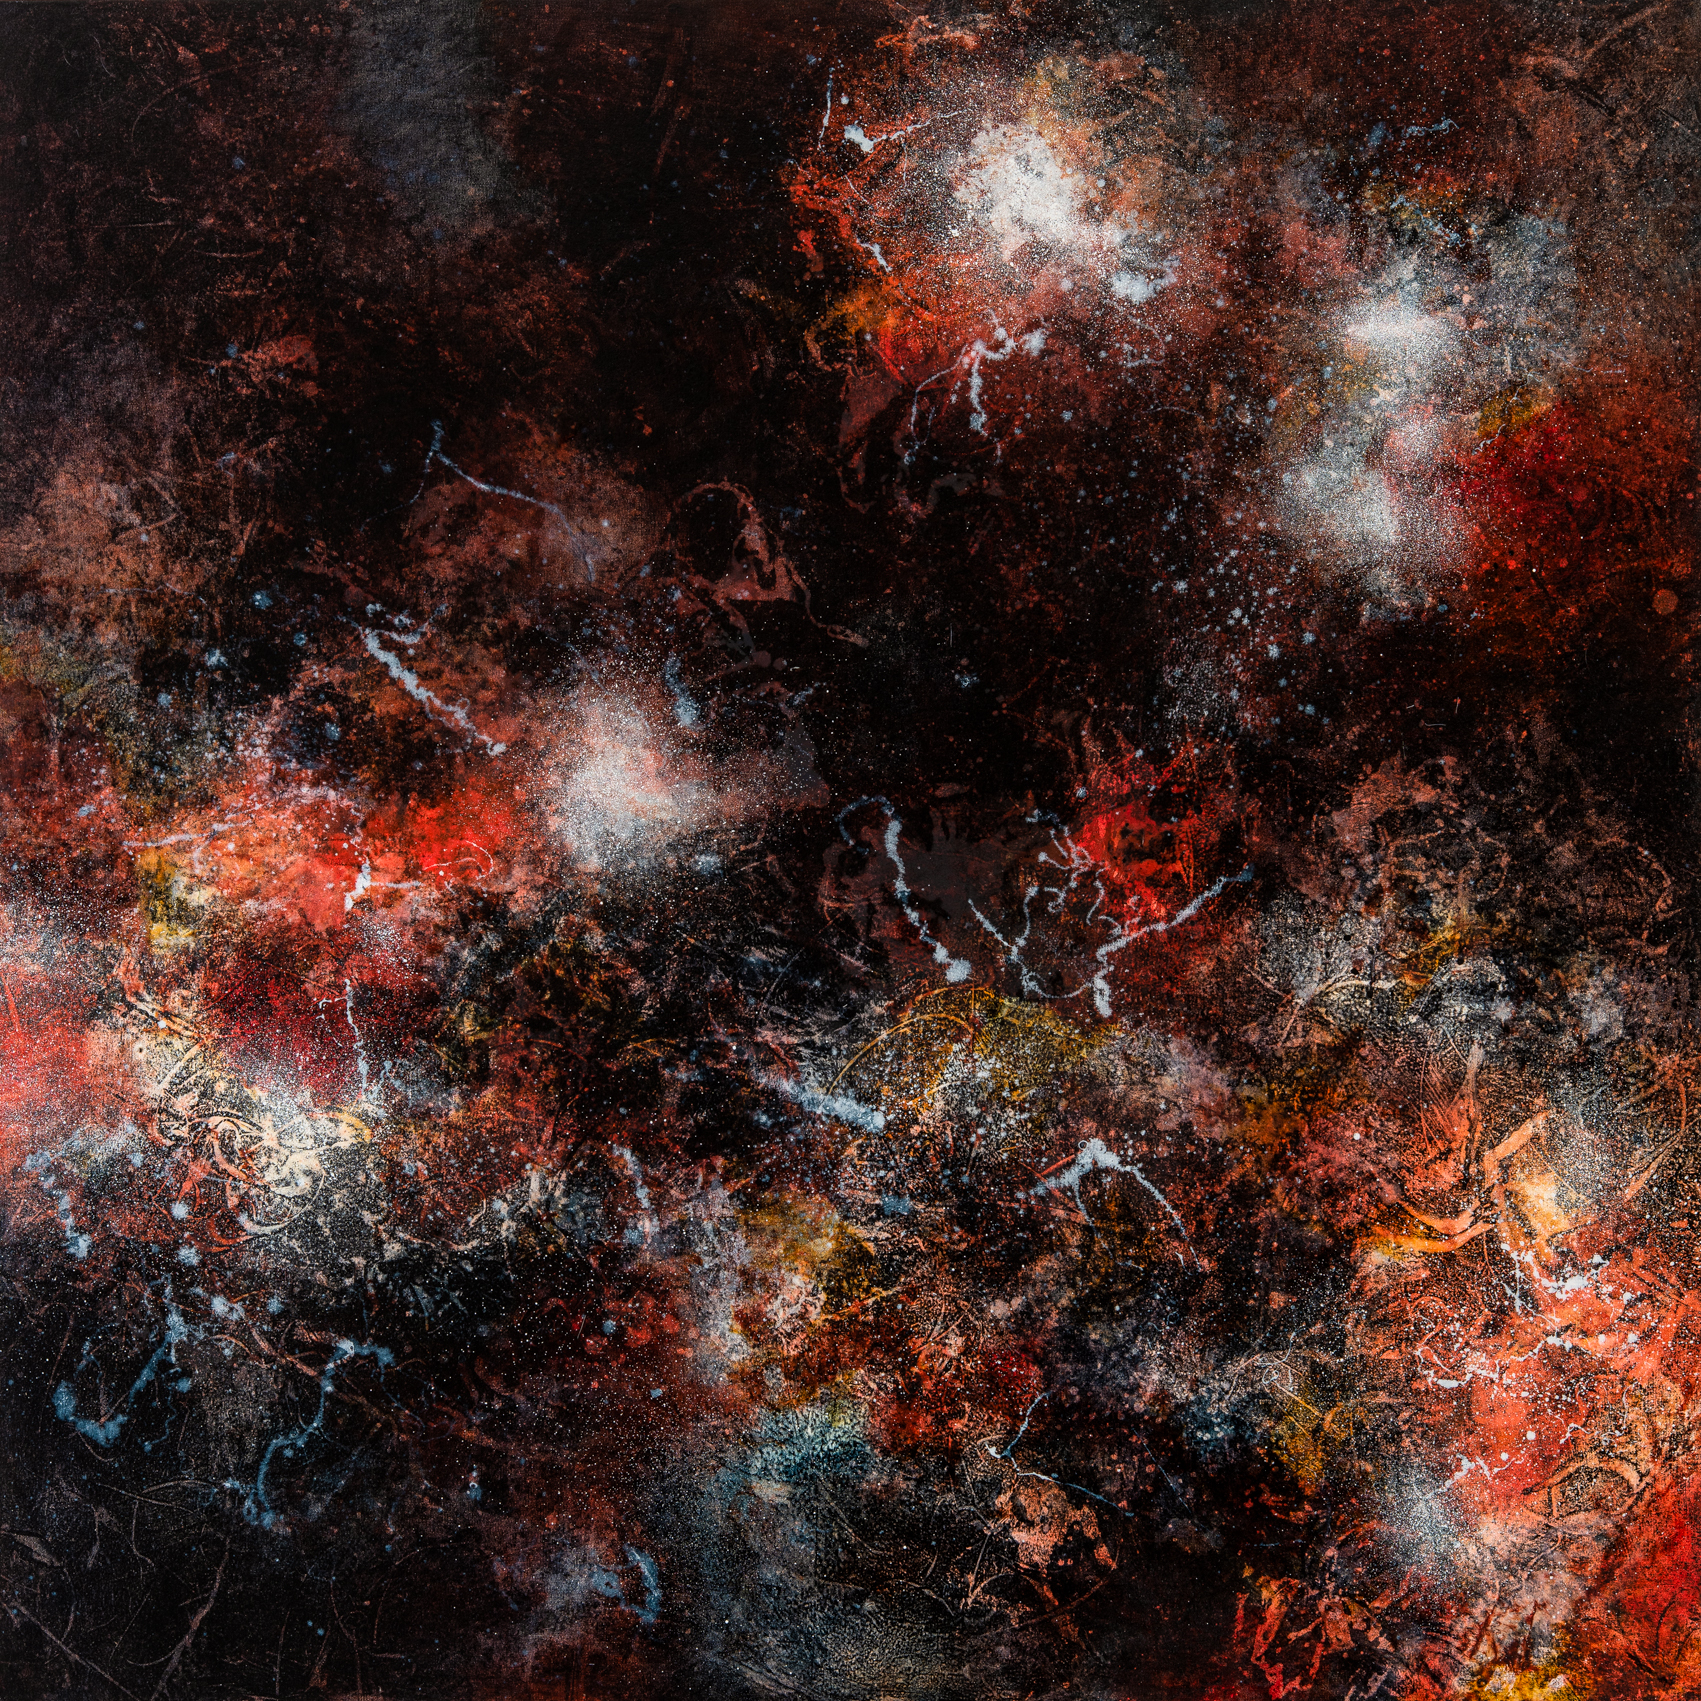 Ione Parkin RWA, Dark Phenomena, oil on